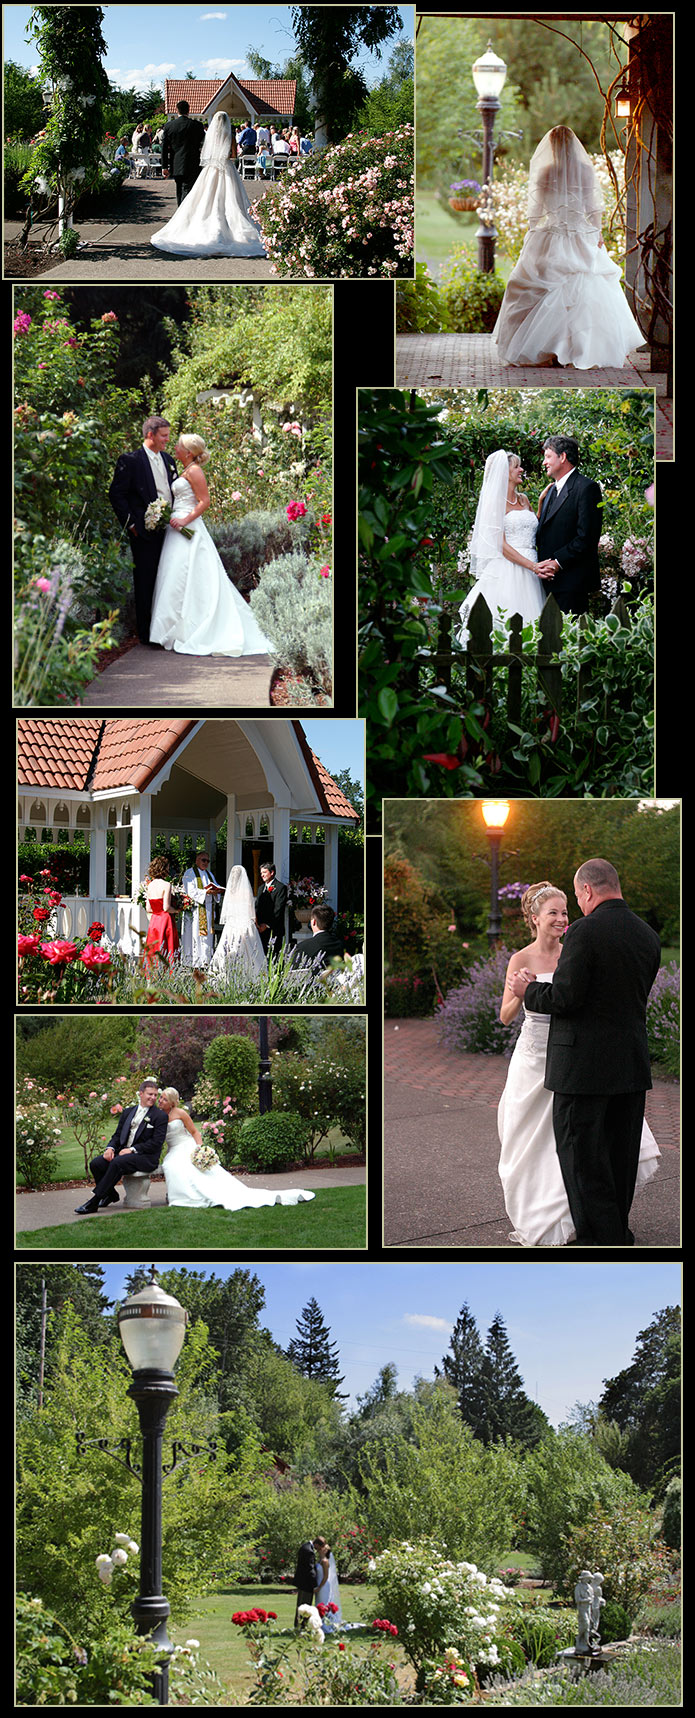 Wedding photography examples at the Eugene Country Inn